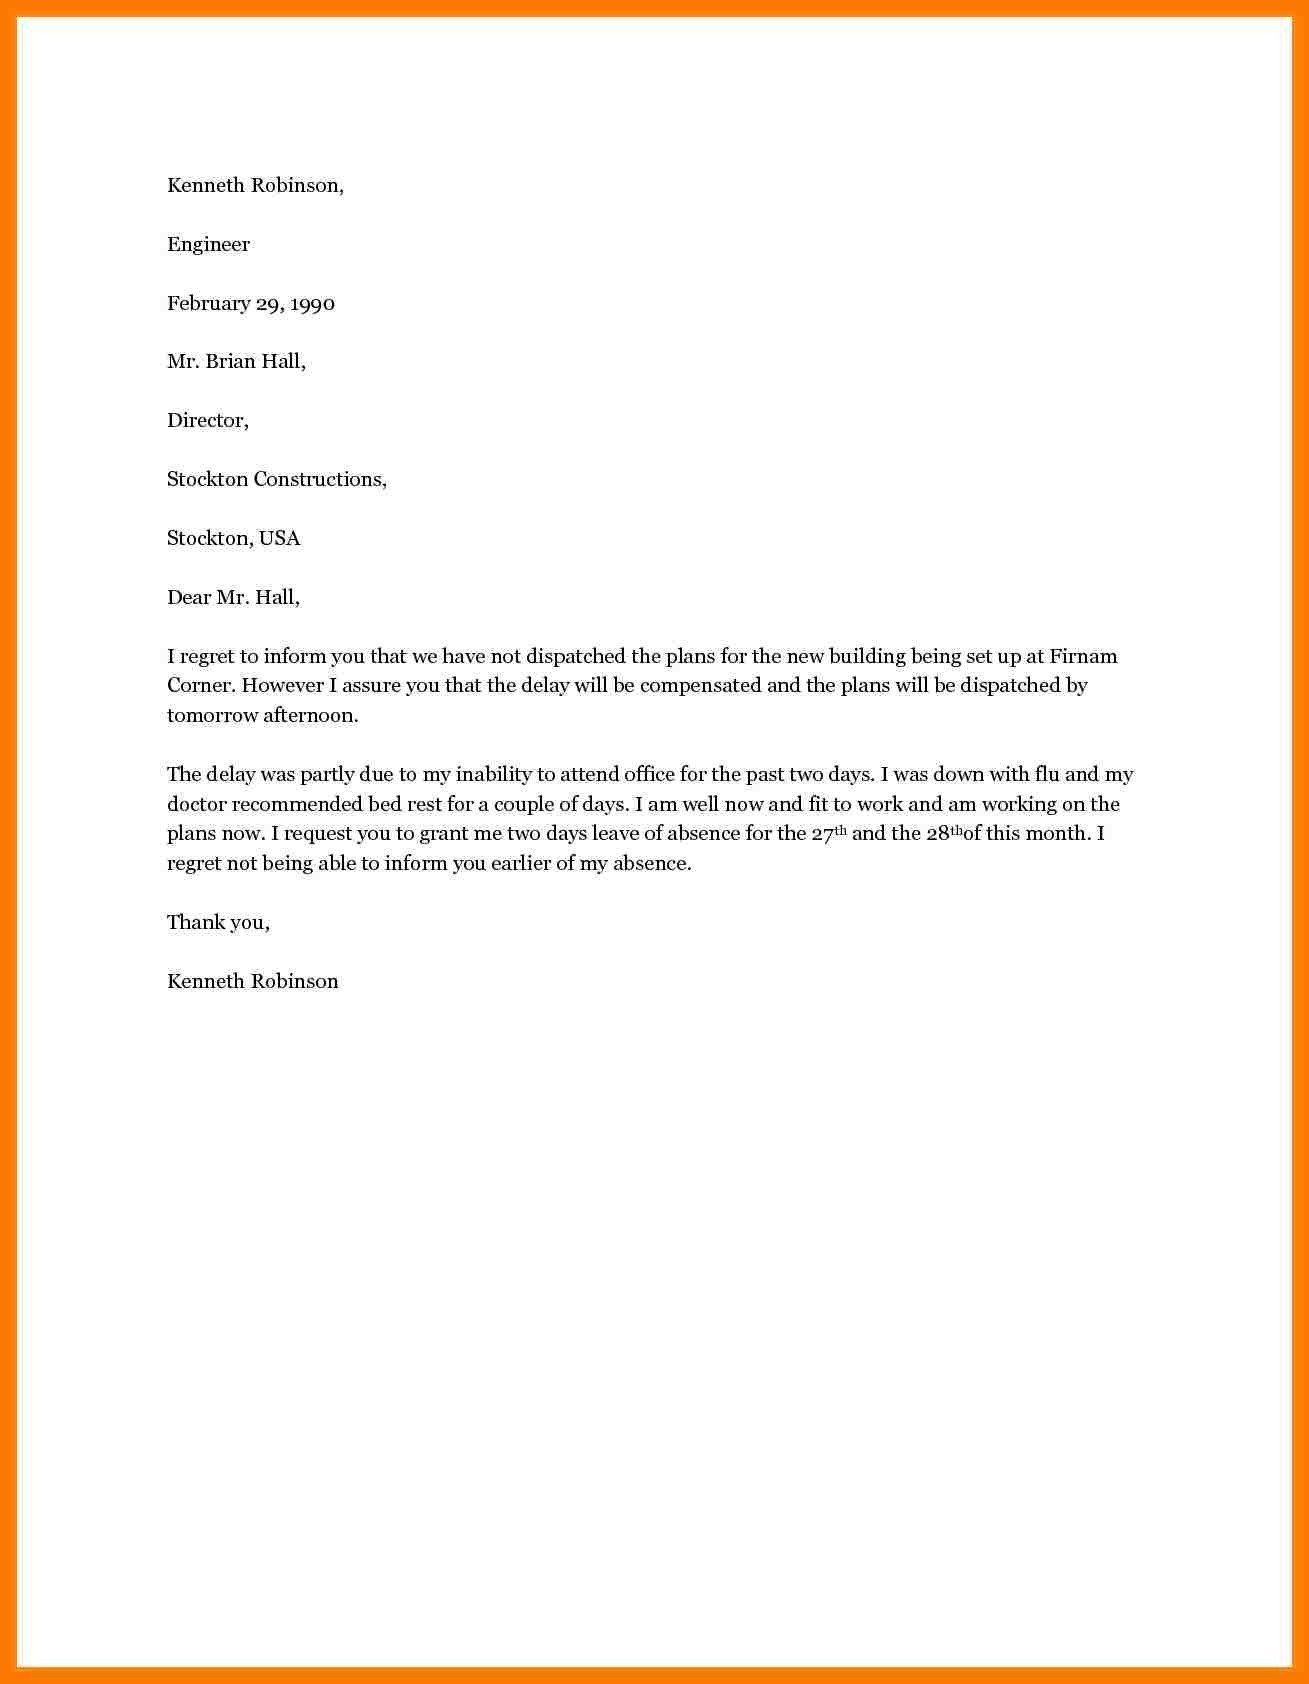 Vacation Request Letter Template - Letter Template for Leave Request New Vacation Request Letter